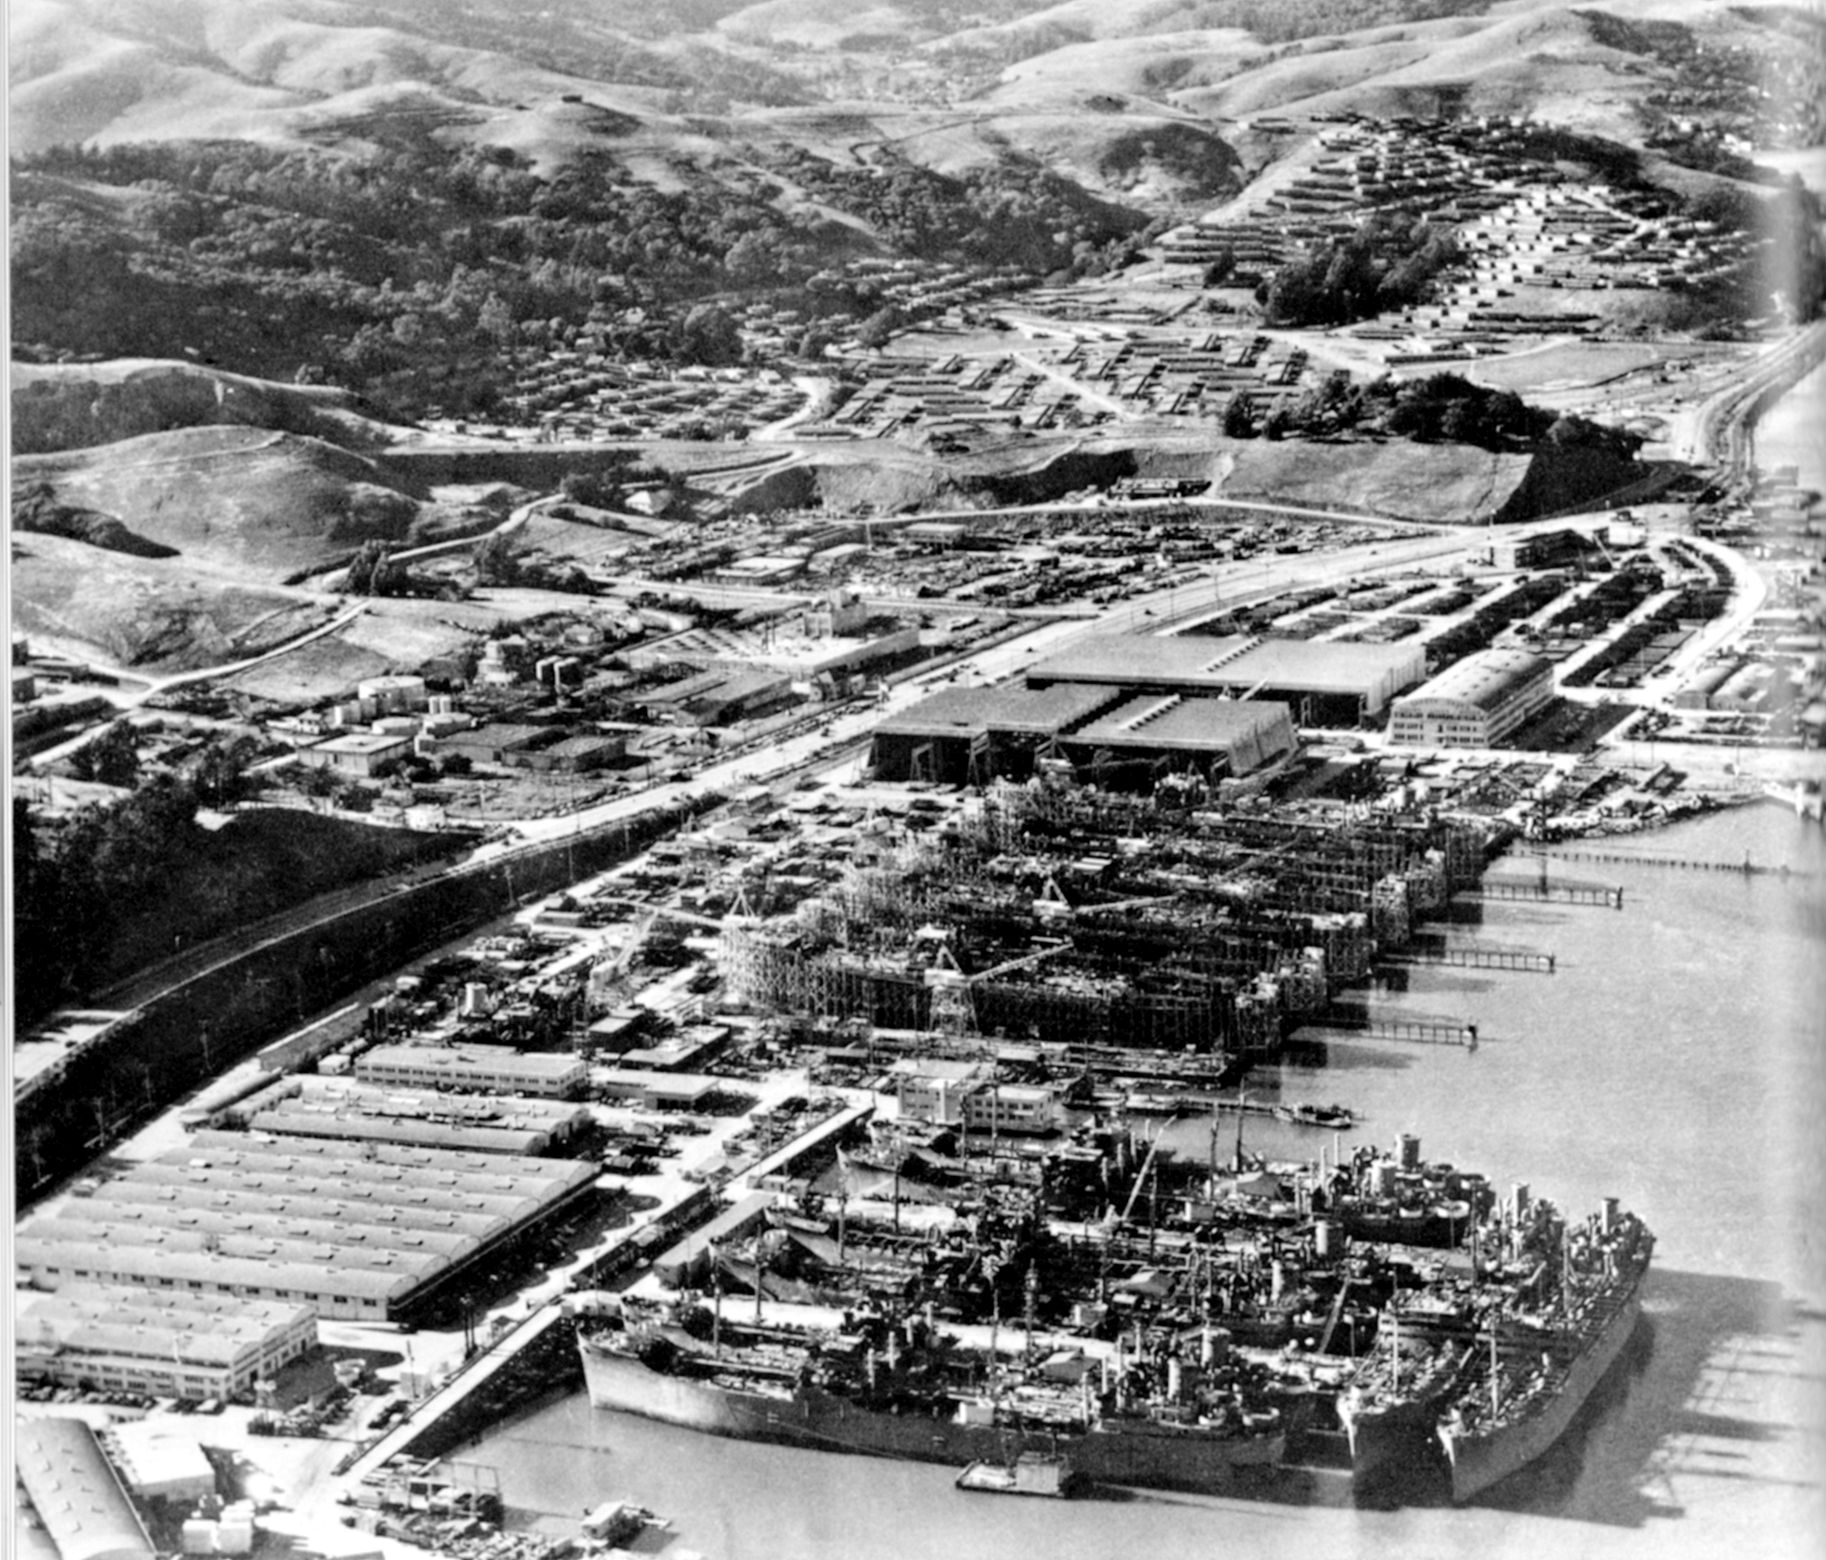 PHOTO COURTESY OF SAUSALITO HISTORICAL SOCIETY  This photograph, donated to the Historical Society by Steve Bechtel, shows the shipyard in full production. Bechtel proudly displayed the image in his office for many years.